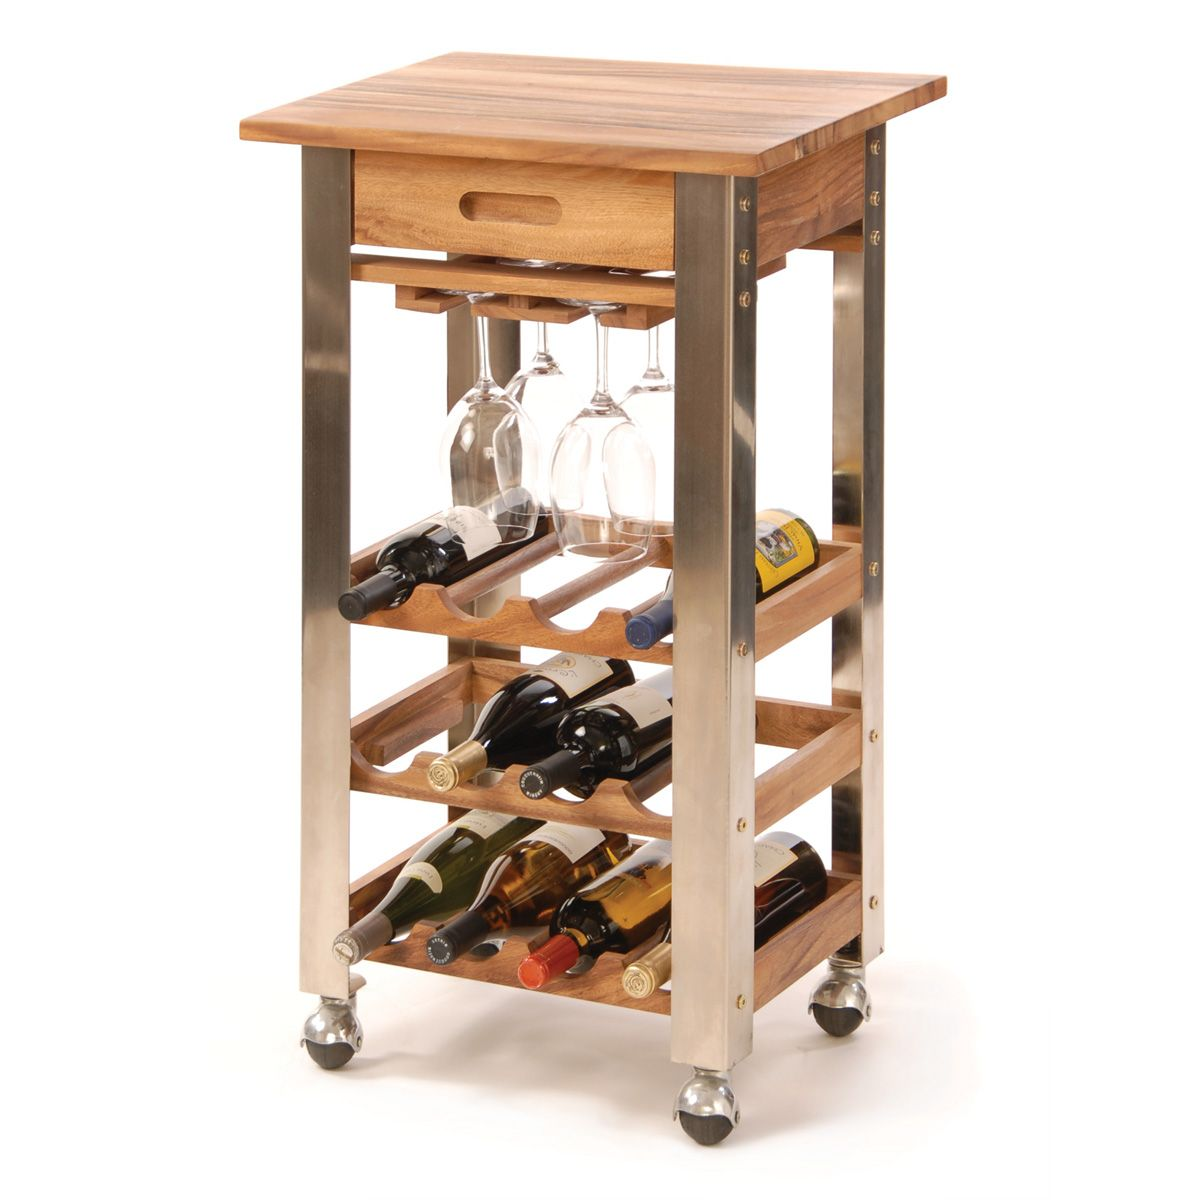 The Kitchen Trolley Is A Moveable Wine Rack For 12 Bottles Of Wine And 4 To 6 Stemware Glasses 199 95 Kitchen Trolley Wrought Iron Wine Rack Tidy Kitchen